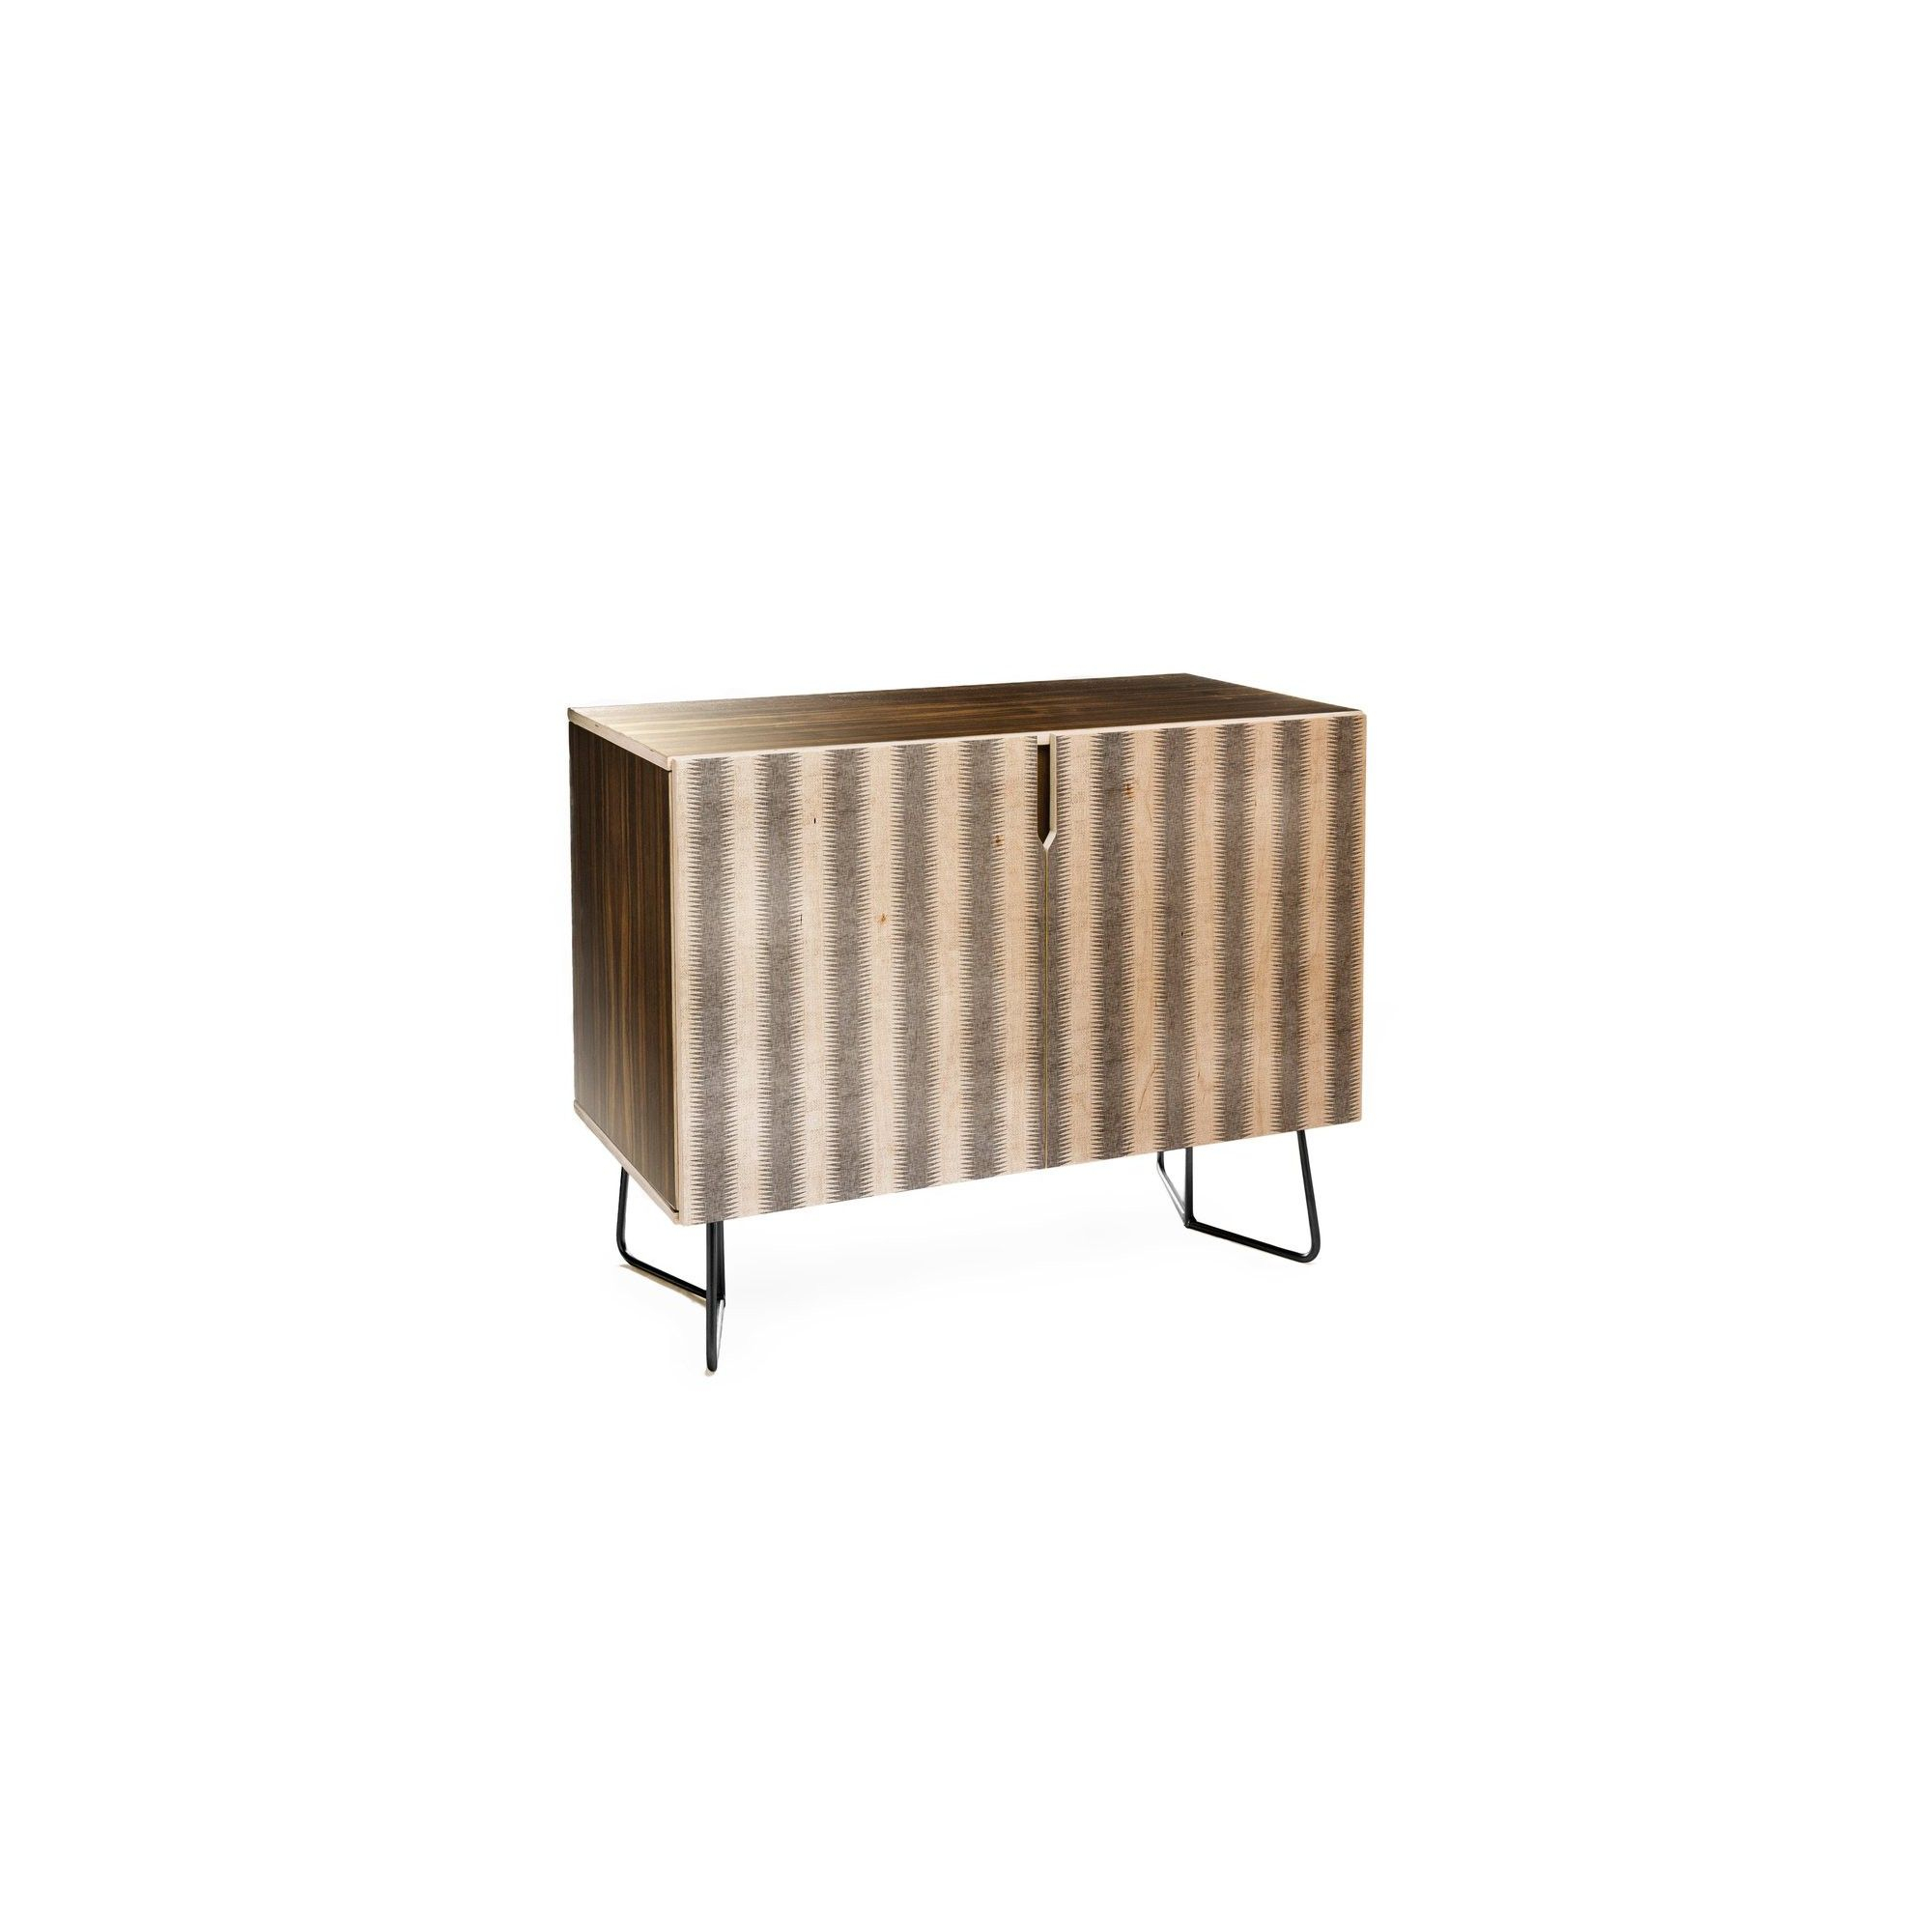 Holli Zollinger French Seaside Stripe Credenza Black Legs Within Beach Stripes Credenzas (View 7 of 30)